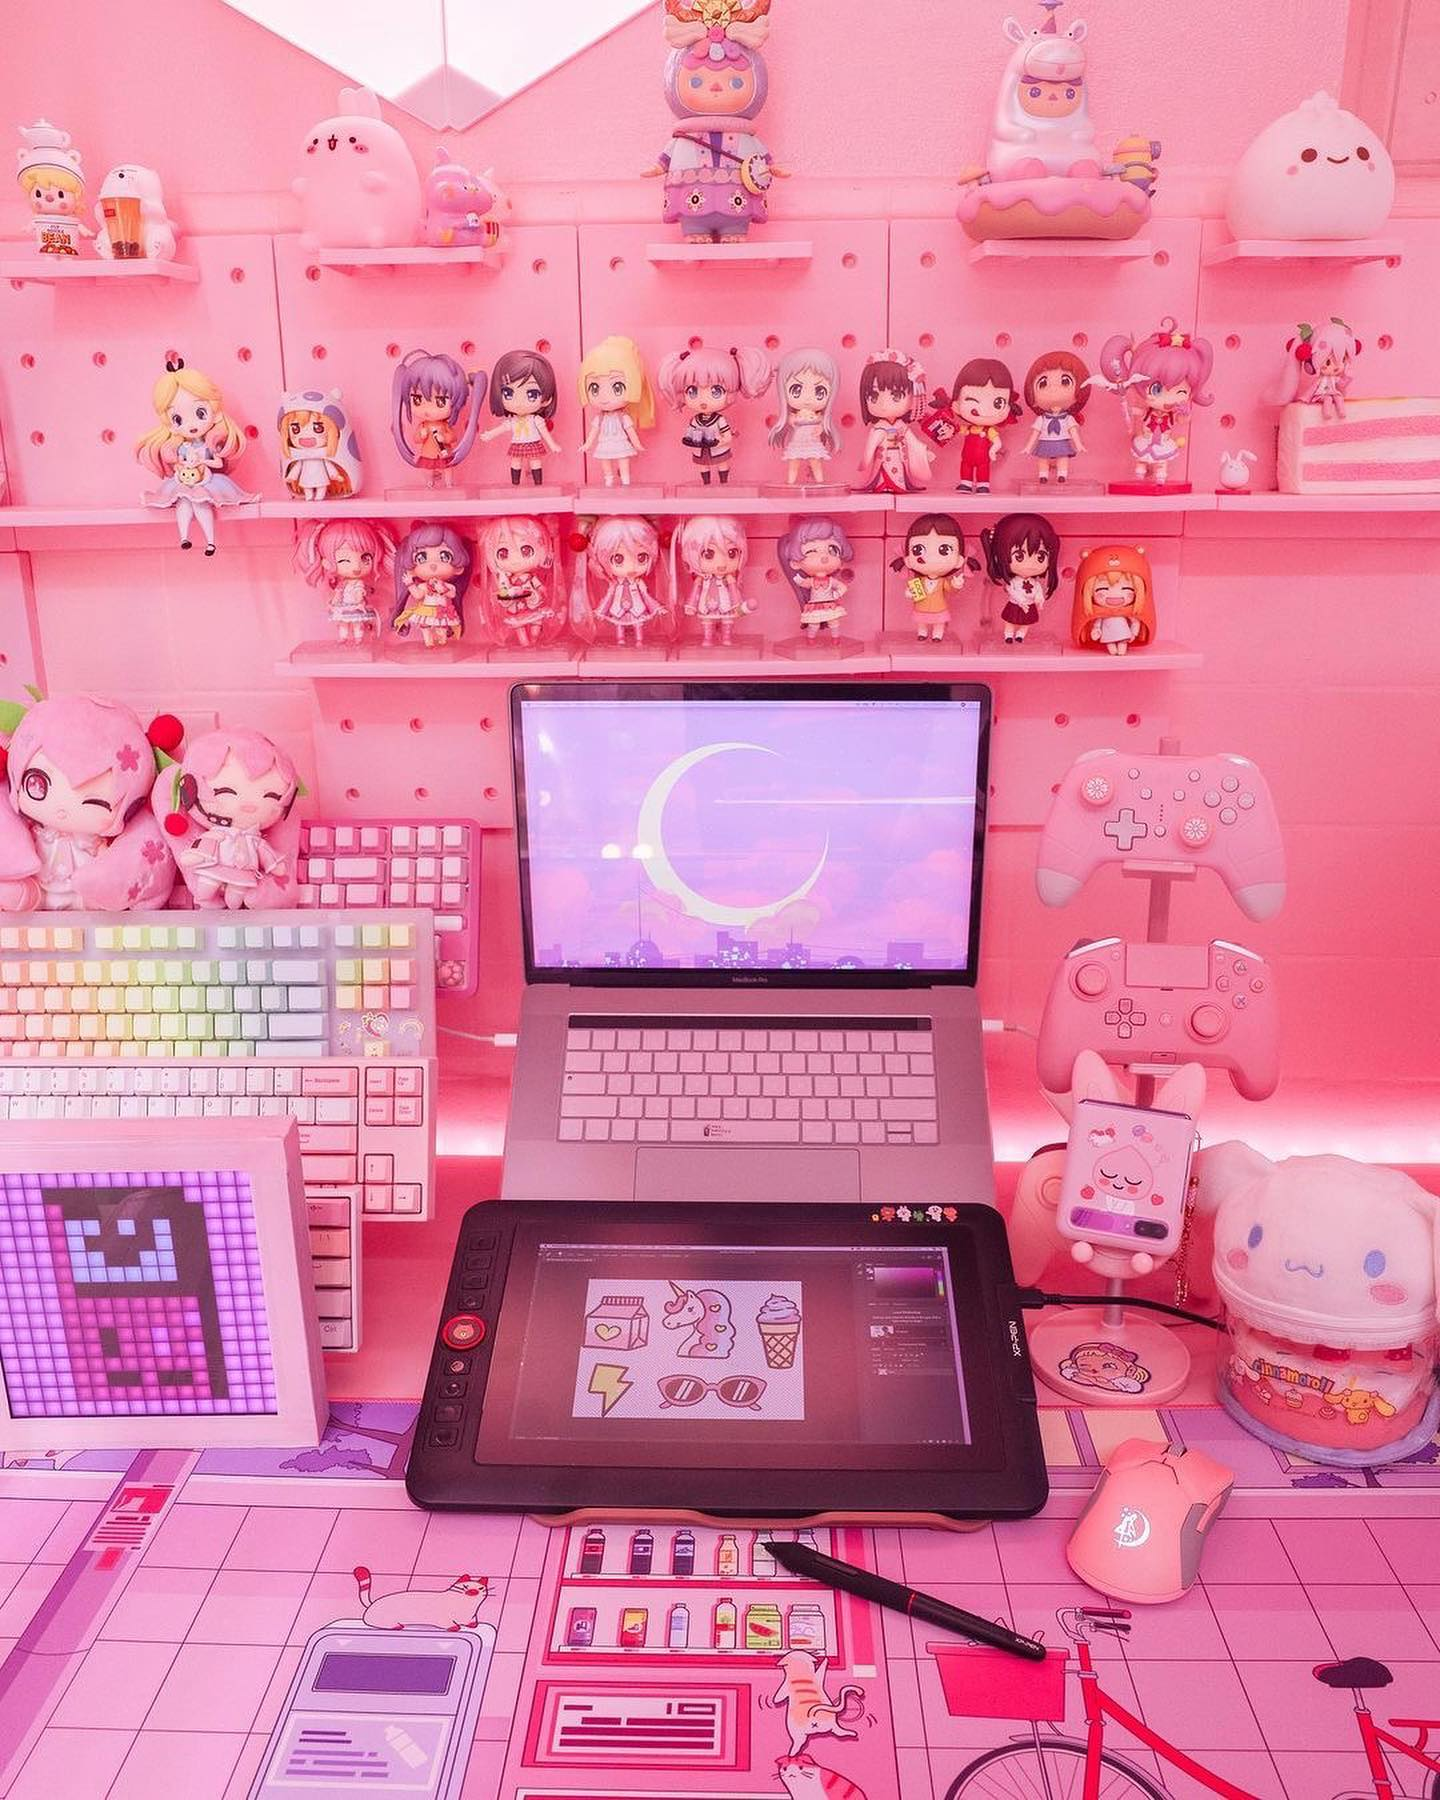 Pink home, pink desk, pink objects, pink #xppensetup.